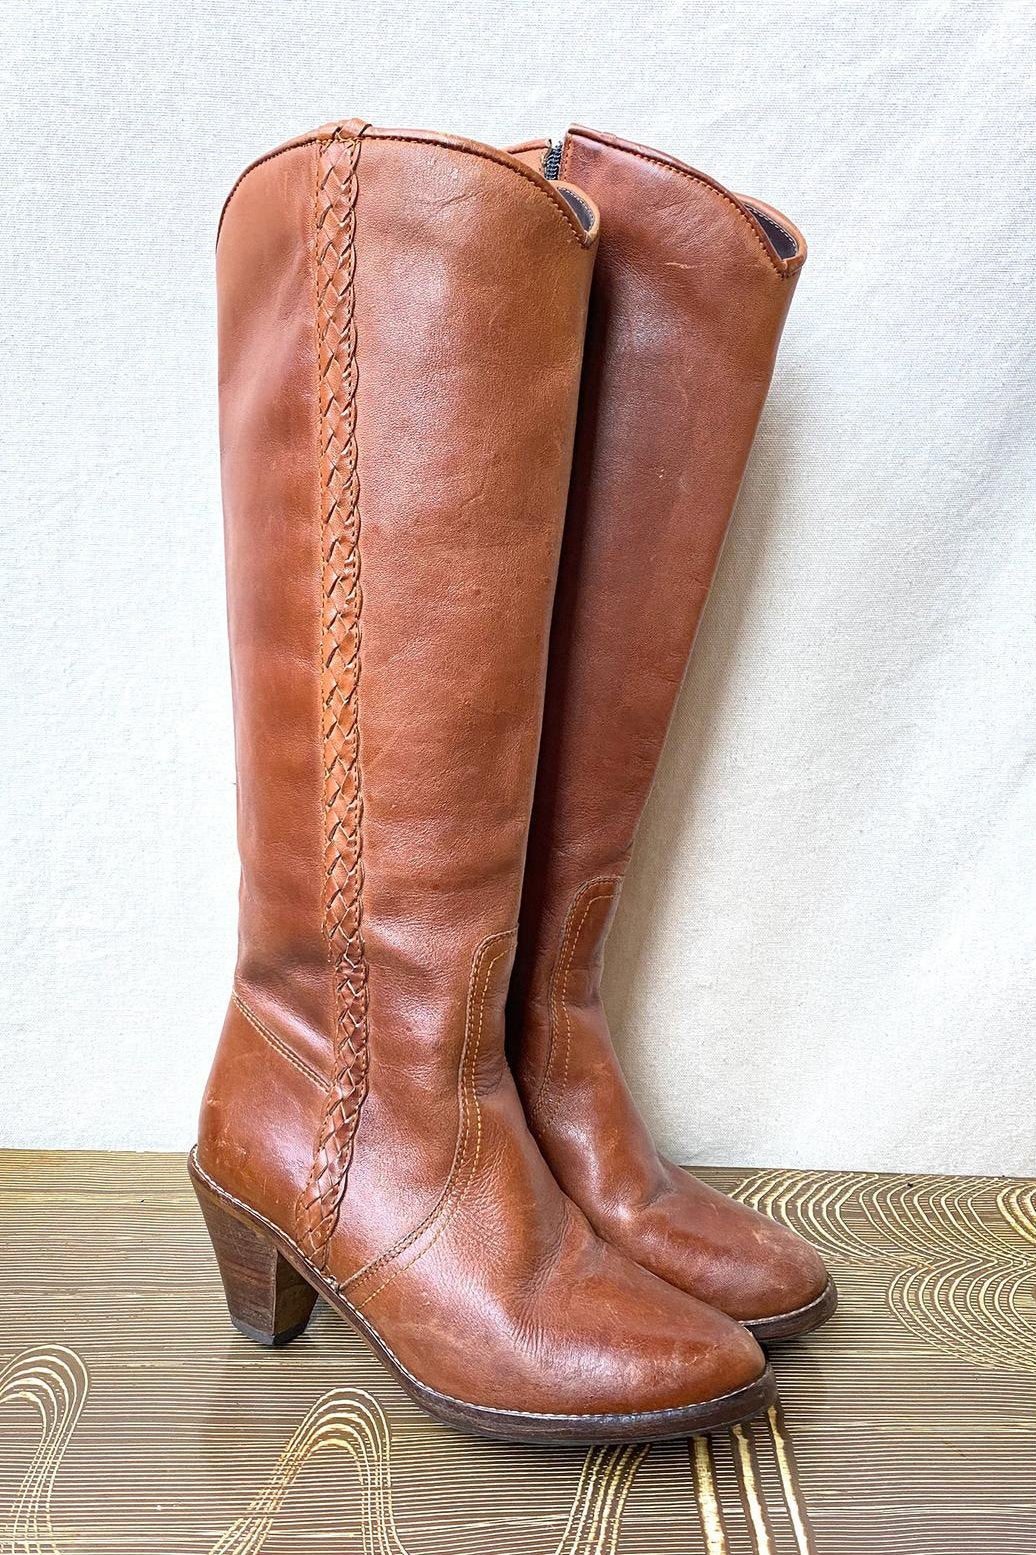 Vintage Boho Leather Cowboy Boots, Size 7